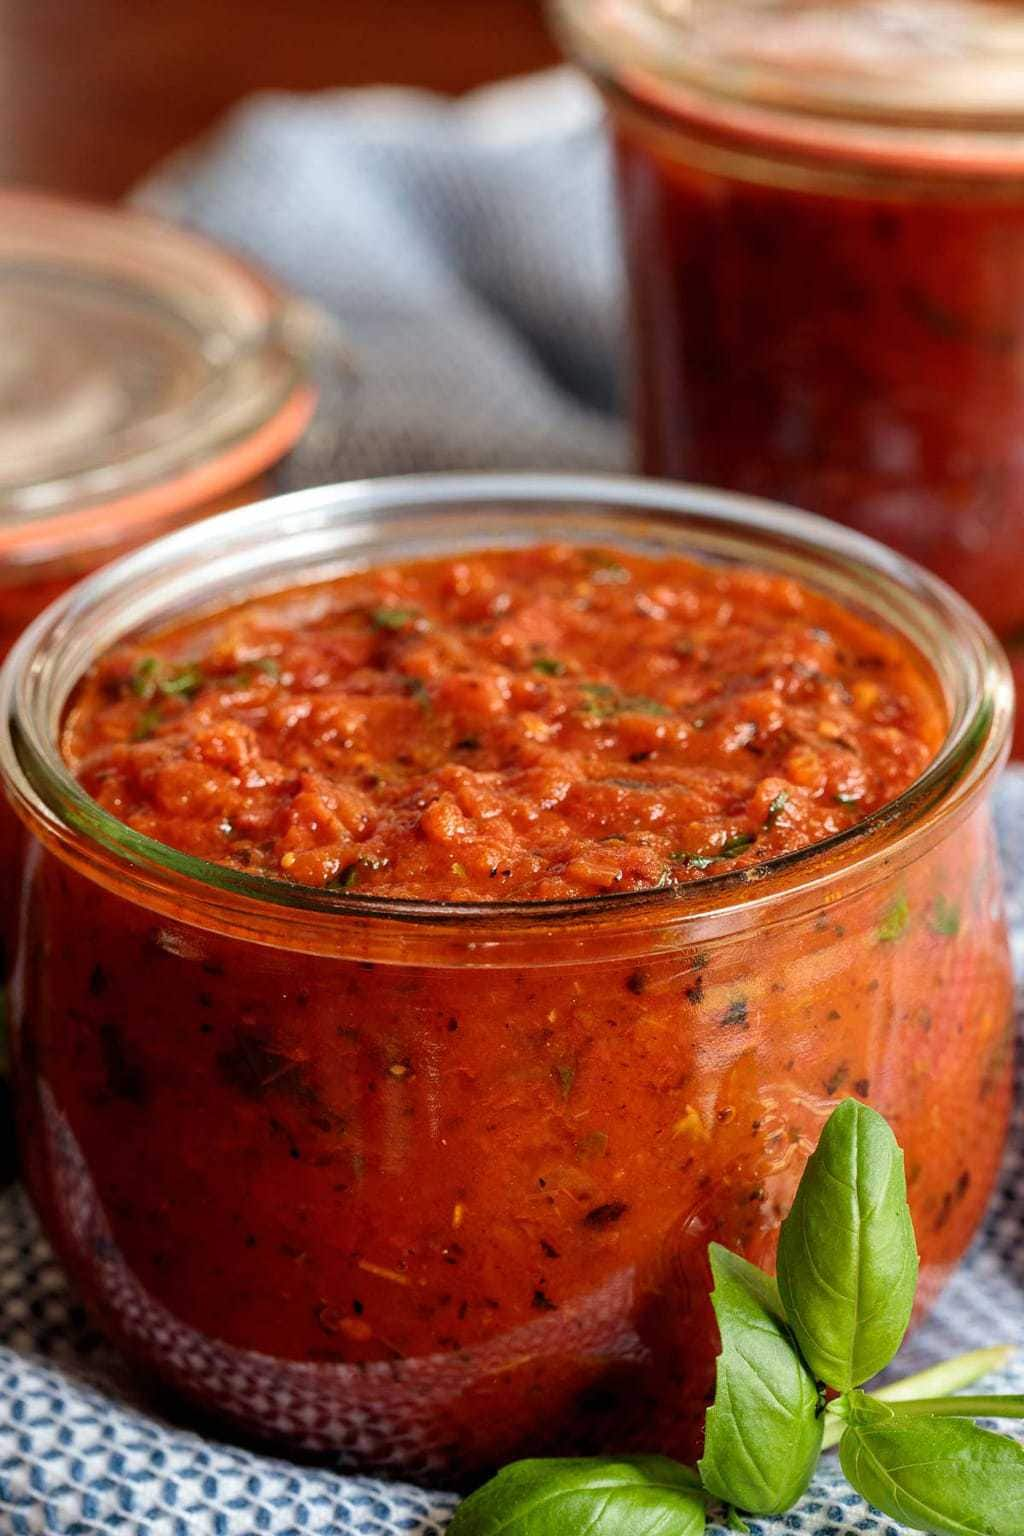 Photo of a glass Weck jar filled with Super Easy Pizza Sauce with a fresh basil leave in front of the jar.